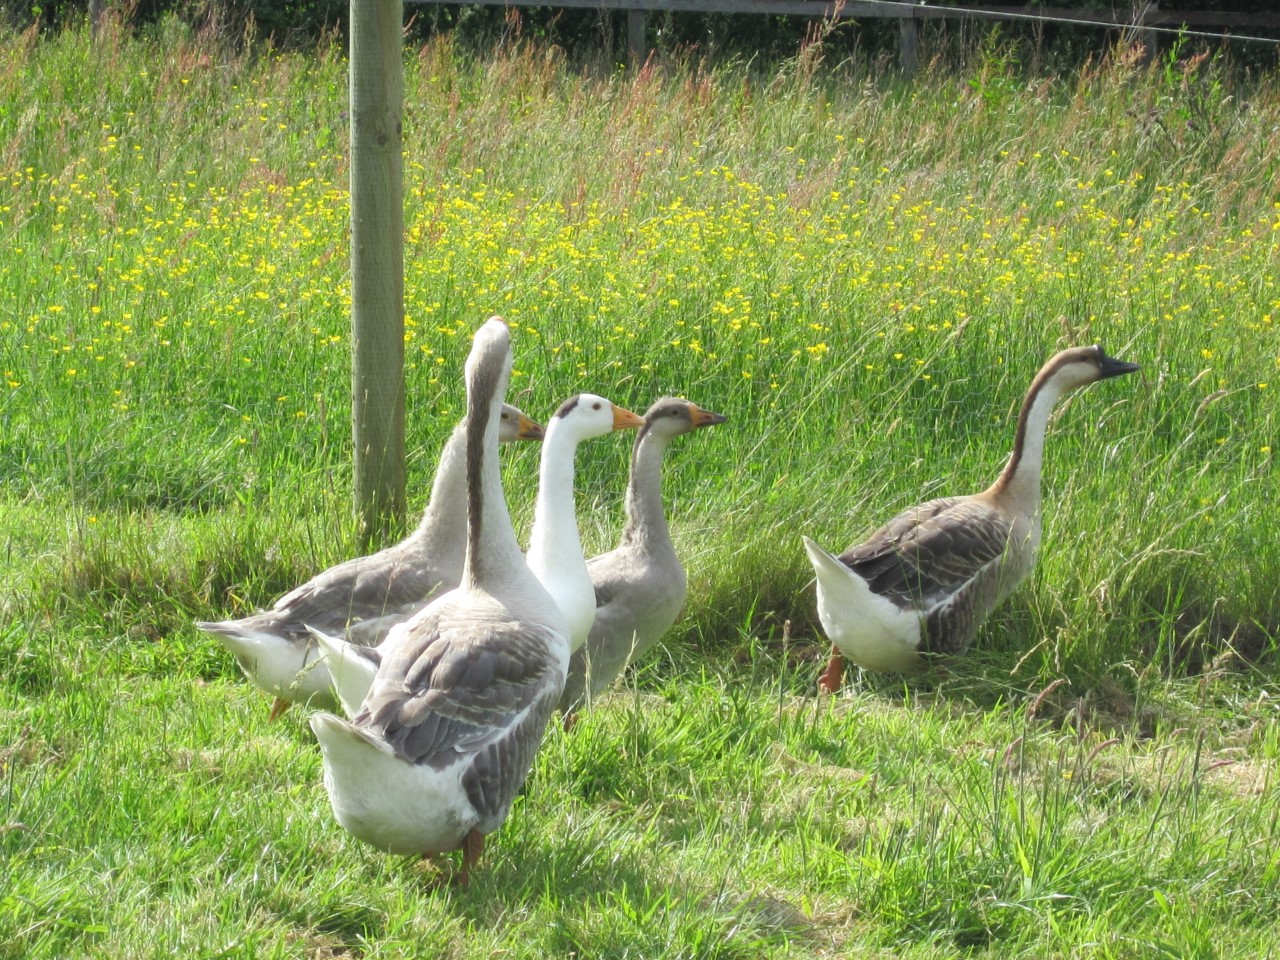 3 month old goslings - can you spot which are the parents?